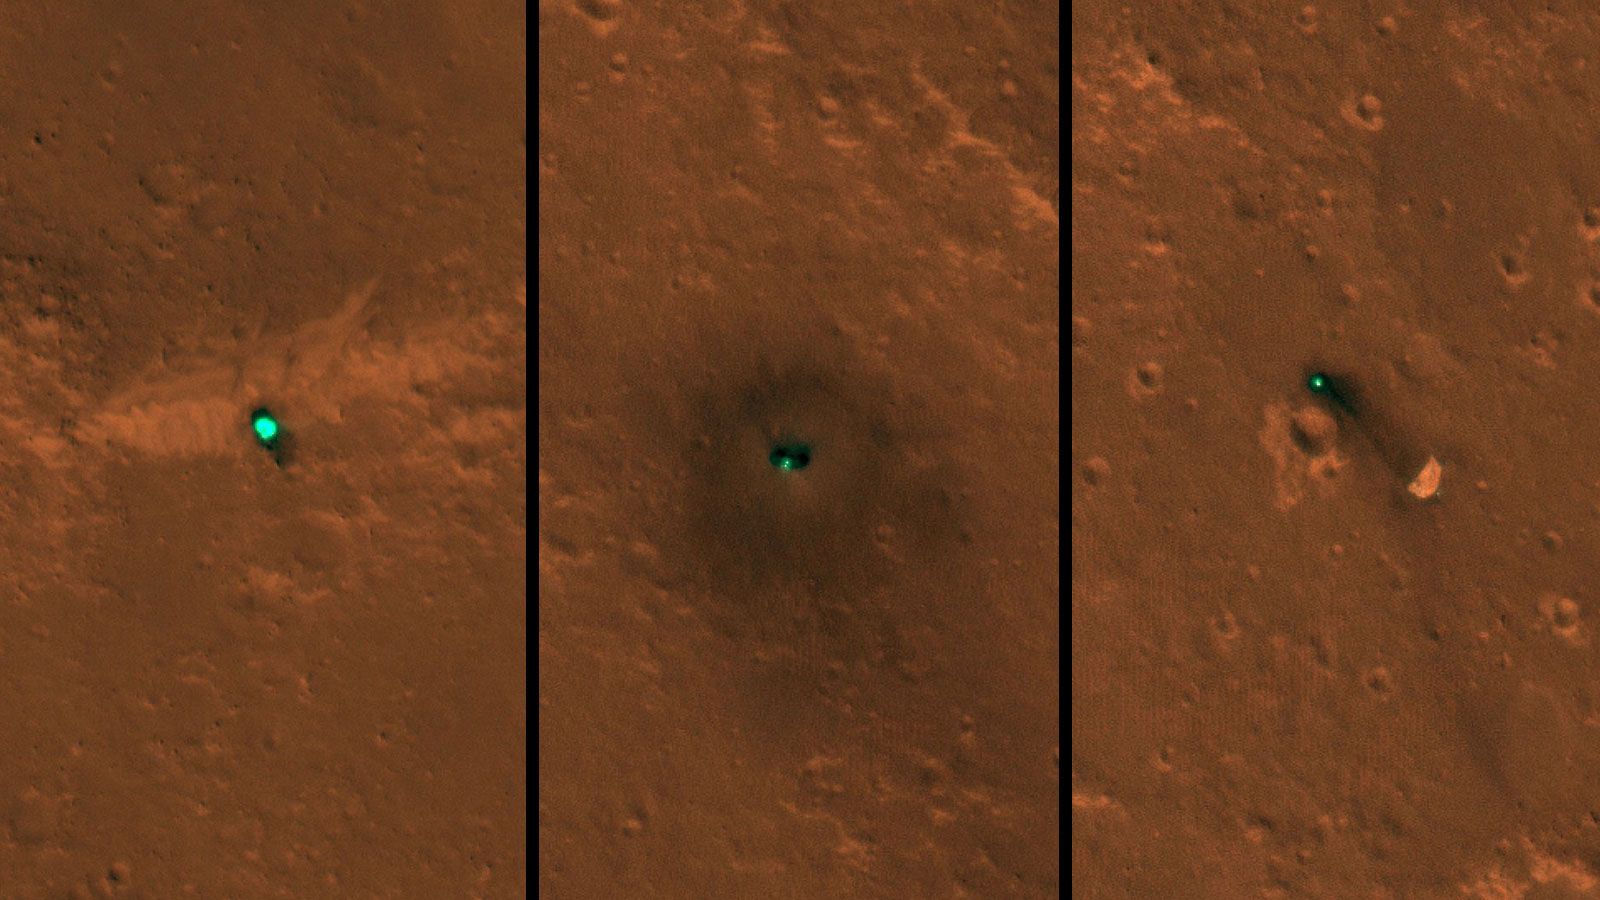 InSight rover spied on Mars by MRO spacecraft's HiRISE camera